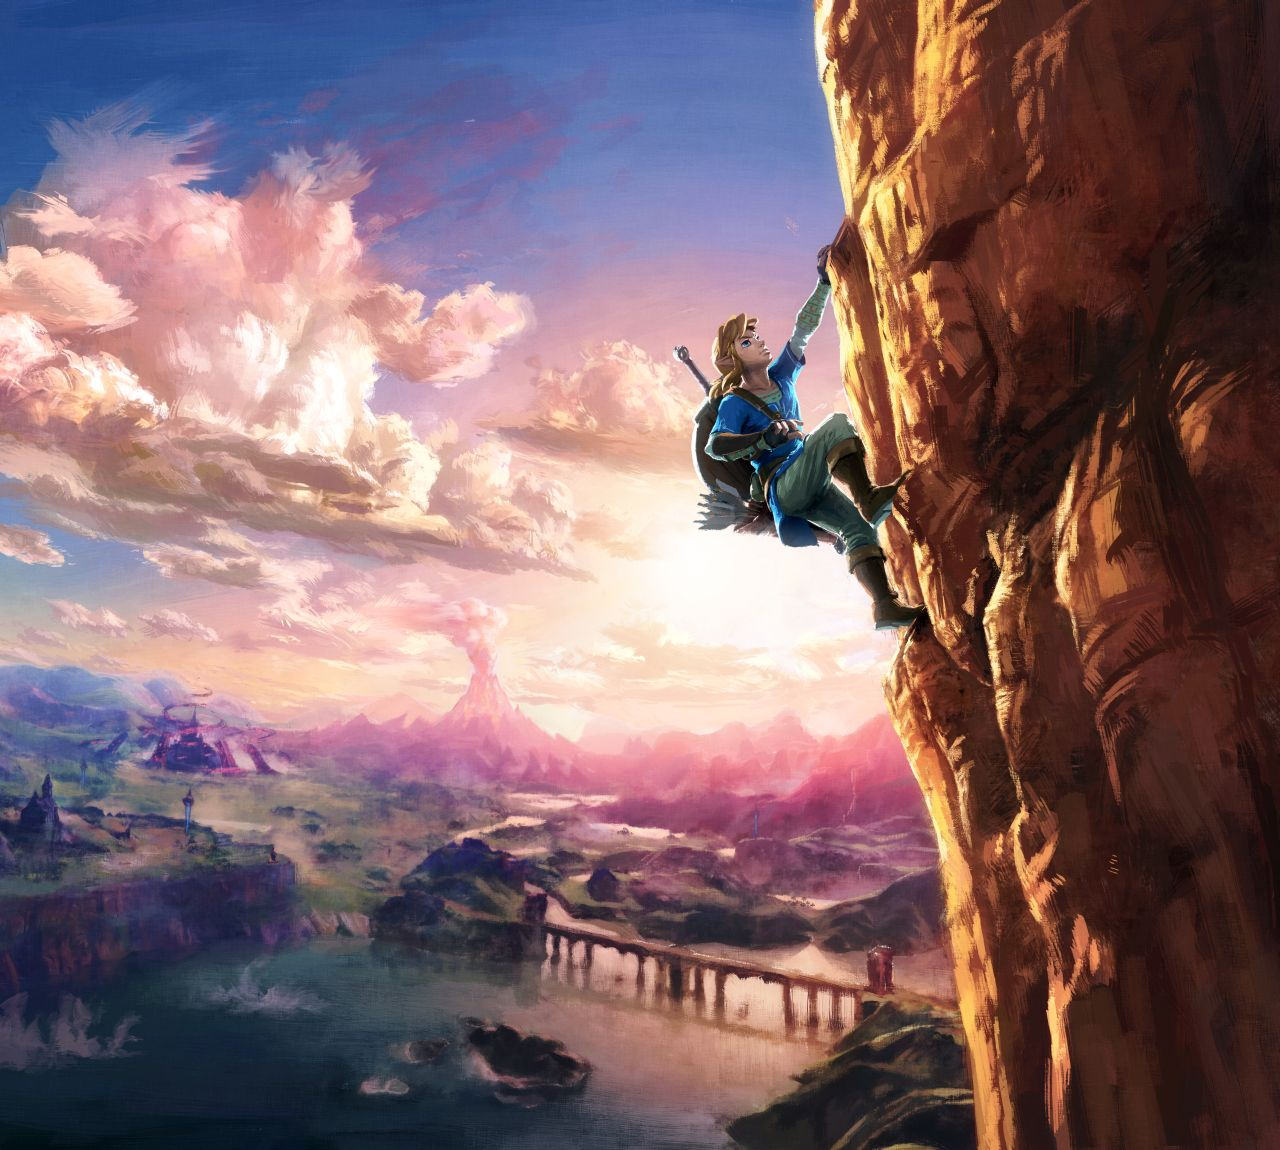 The Legend Of Zelda: Breath Of The Wild Lets You Attack